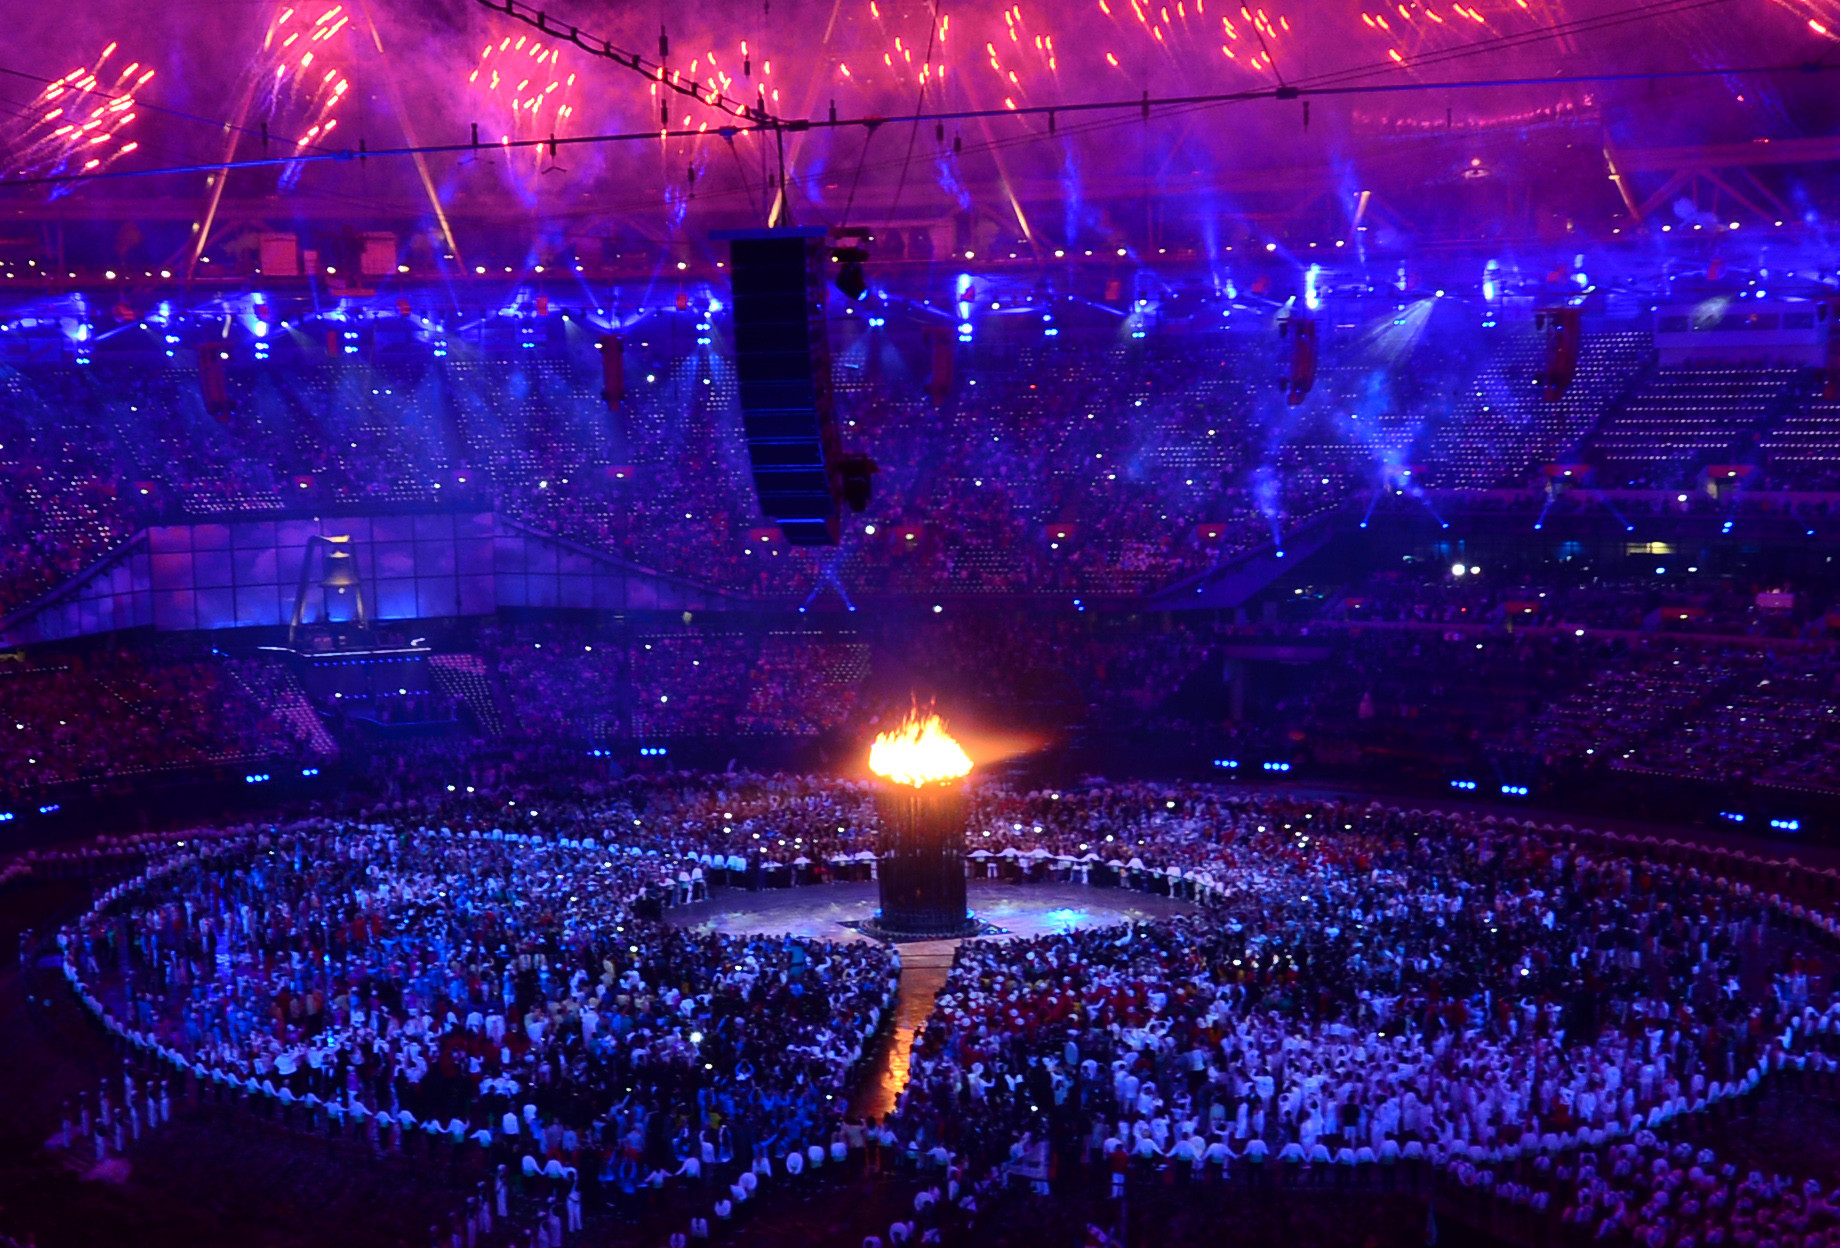 Tokyo 2020 will employ two Olympic cauldrons for the flame, it has been confirmed ©Tokyo 2020